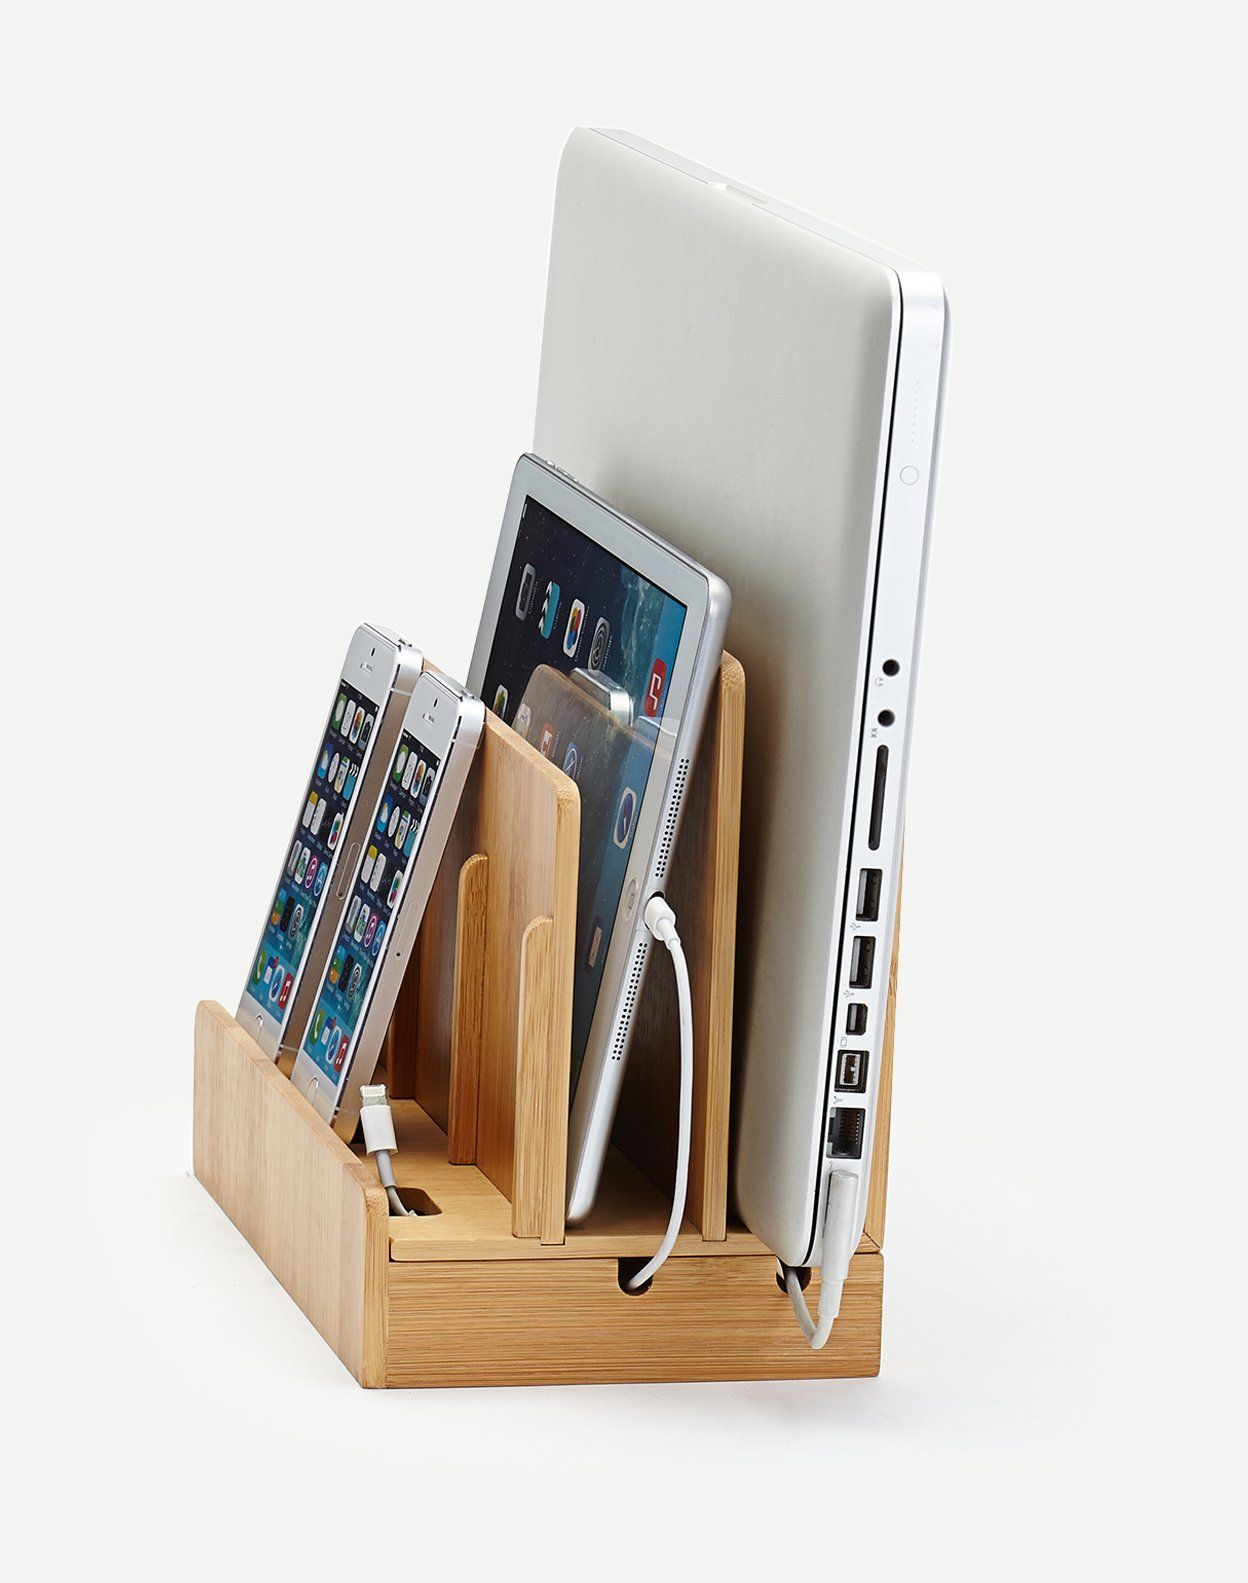 This charging station is amazing i can plug in all of my